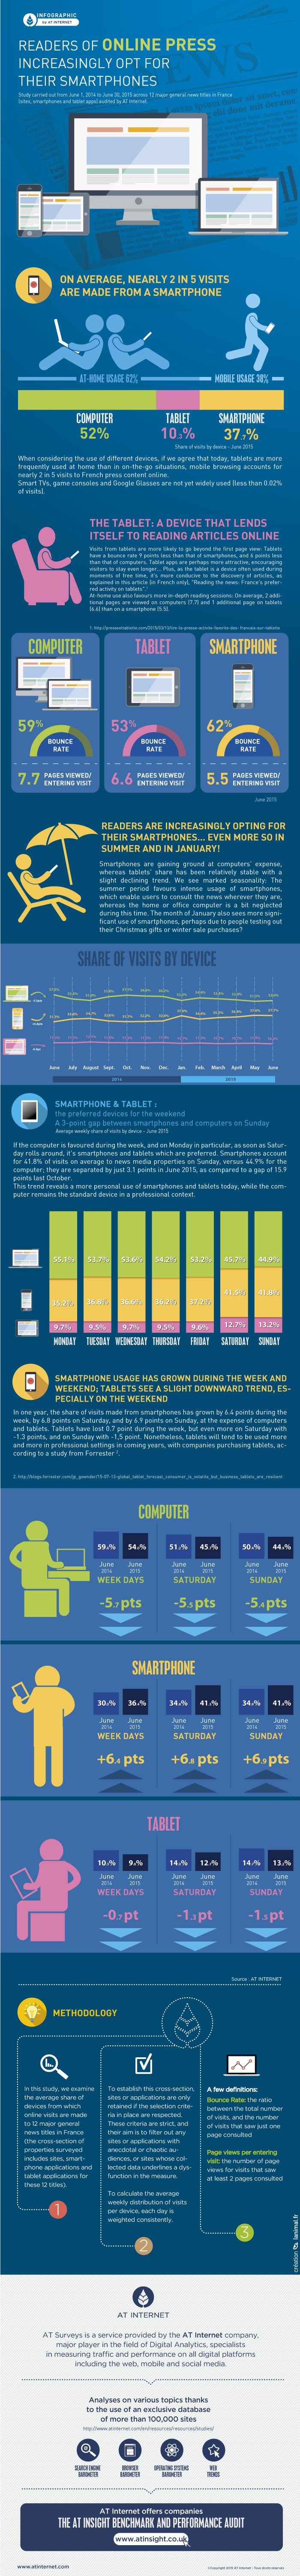 Infographic - Which devices are most-used? AT Internet